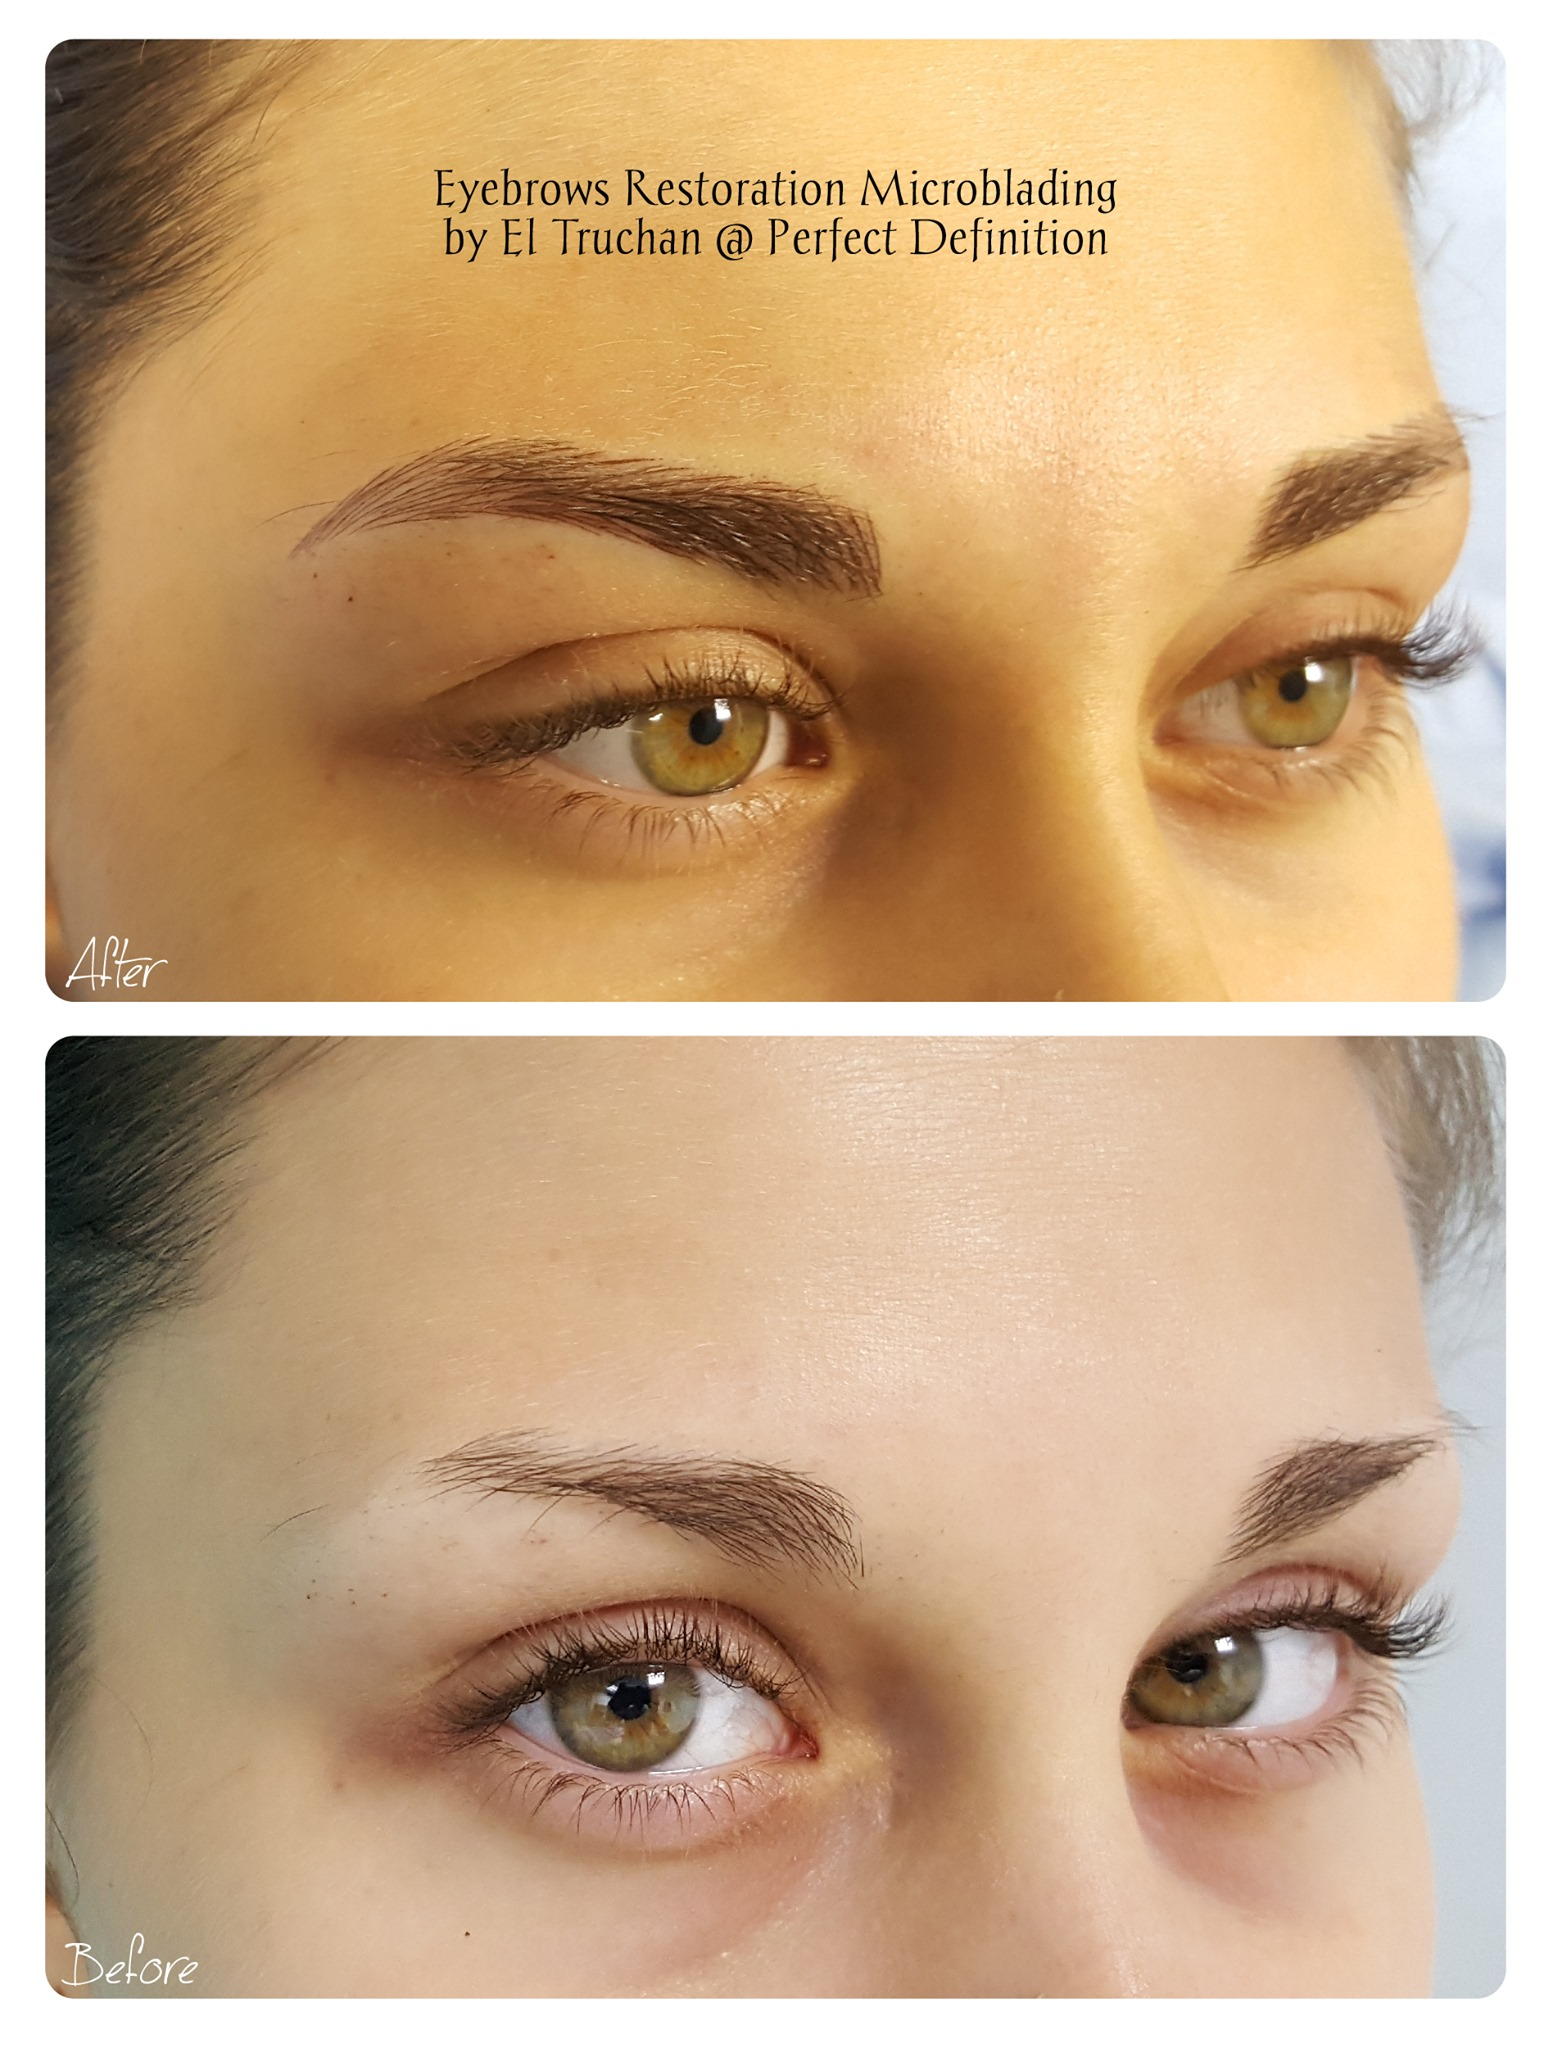 Eyebrows Restoration Microblading by El